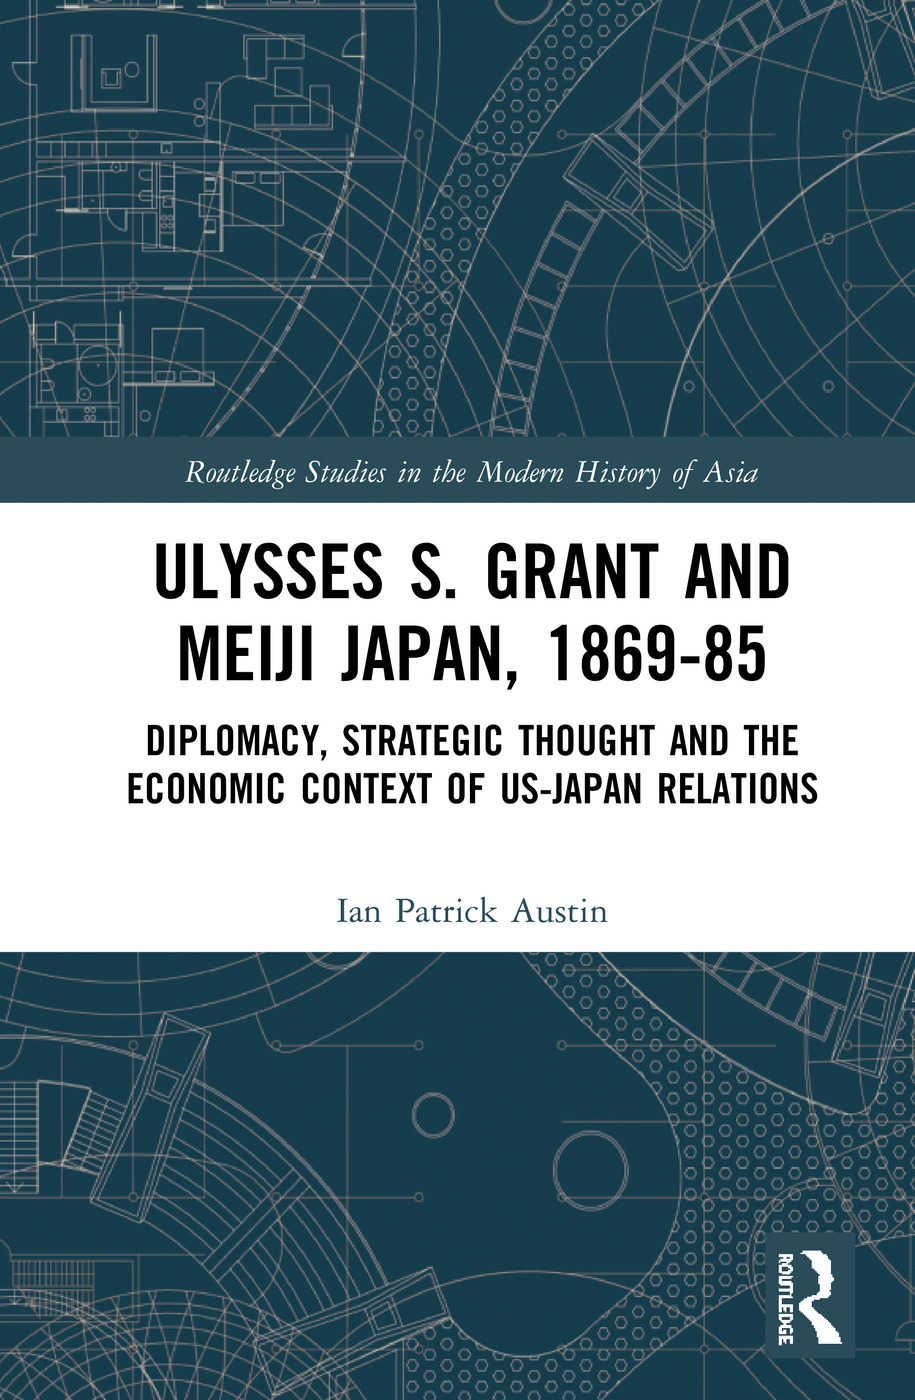 Ulysses S. Grant and Meiji Japan, 1869-1885: Diplomacy, Strategic Thought and the Economic Context of US-Japan Relations book cover